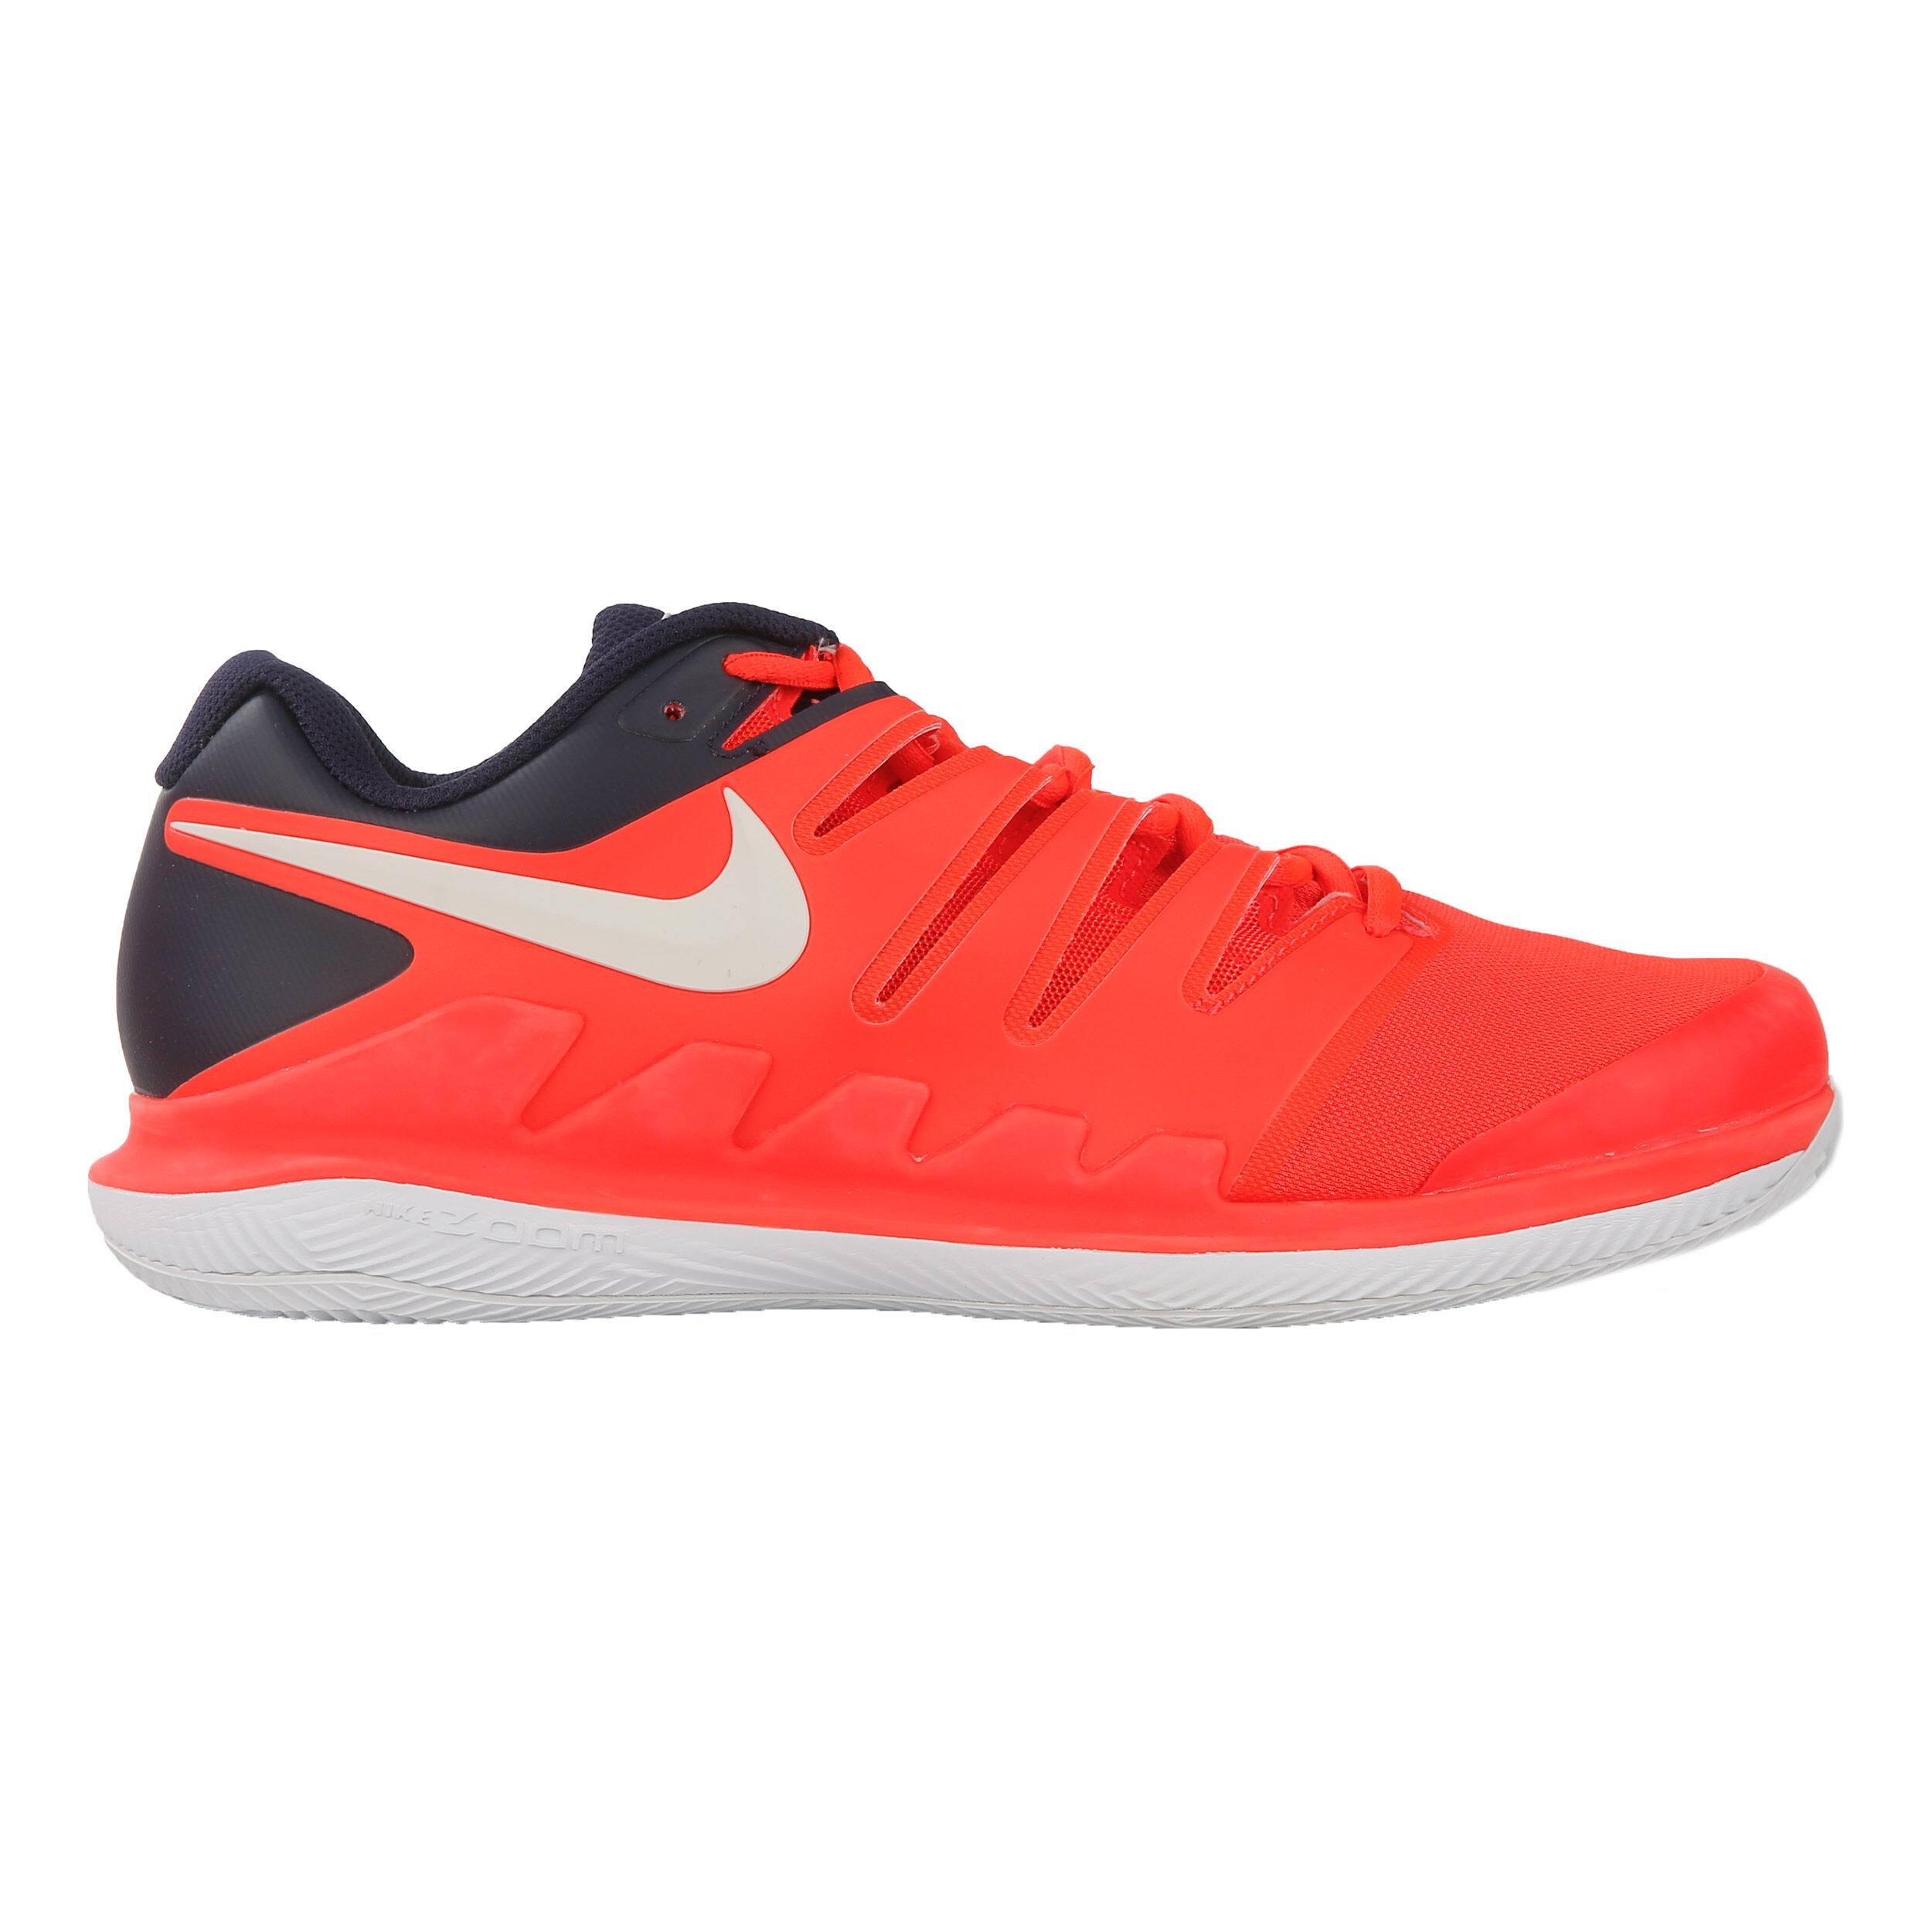 Nike Air Zoom Vapor X Clay Sandplatzschuh Herren Orange